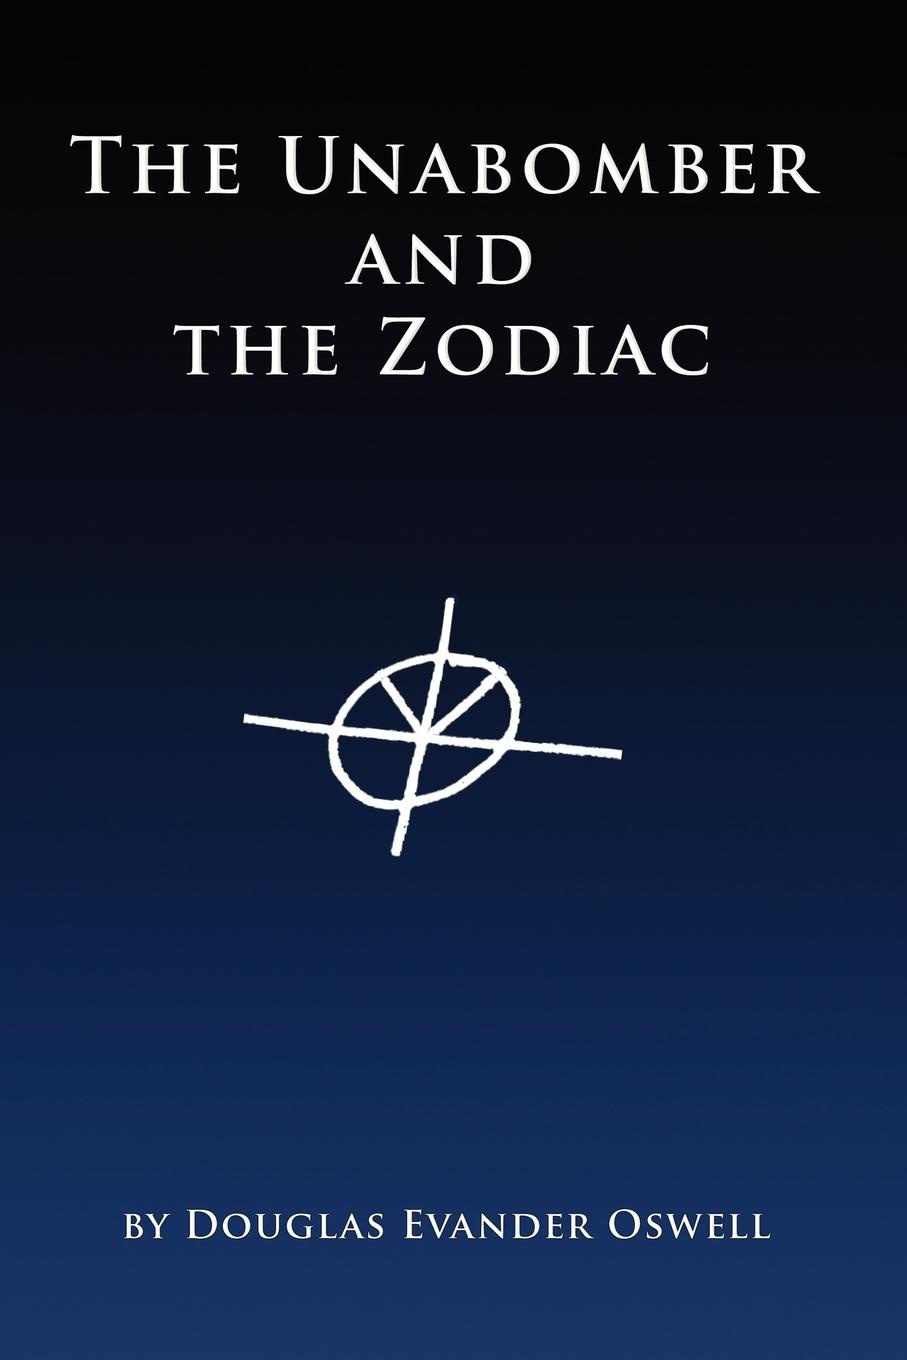 Douglas Evander Oswell The Unabomber and the Zodiac demanding the impossible